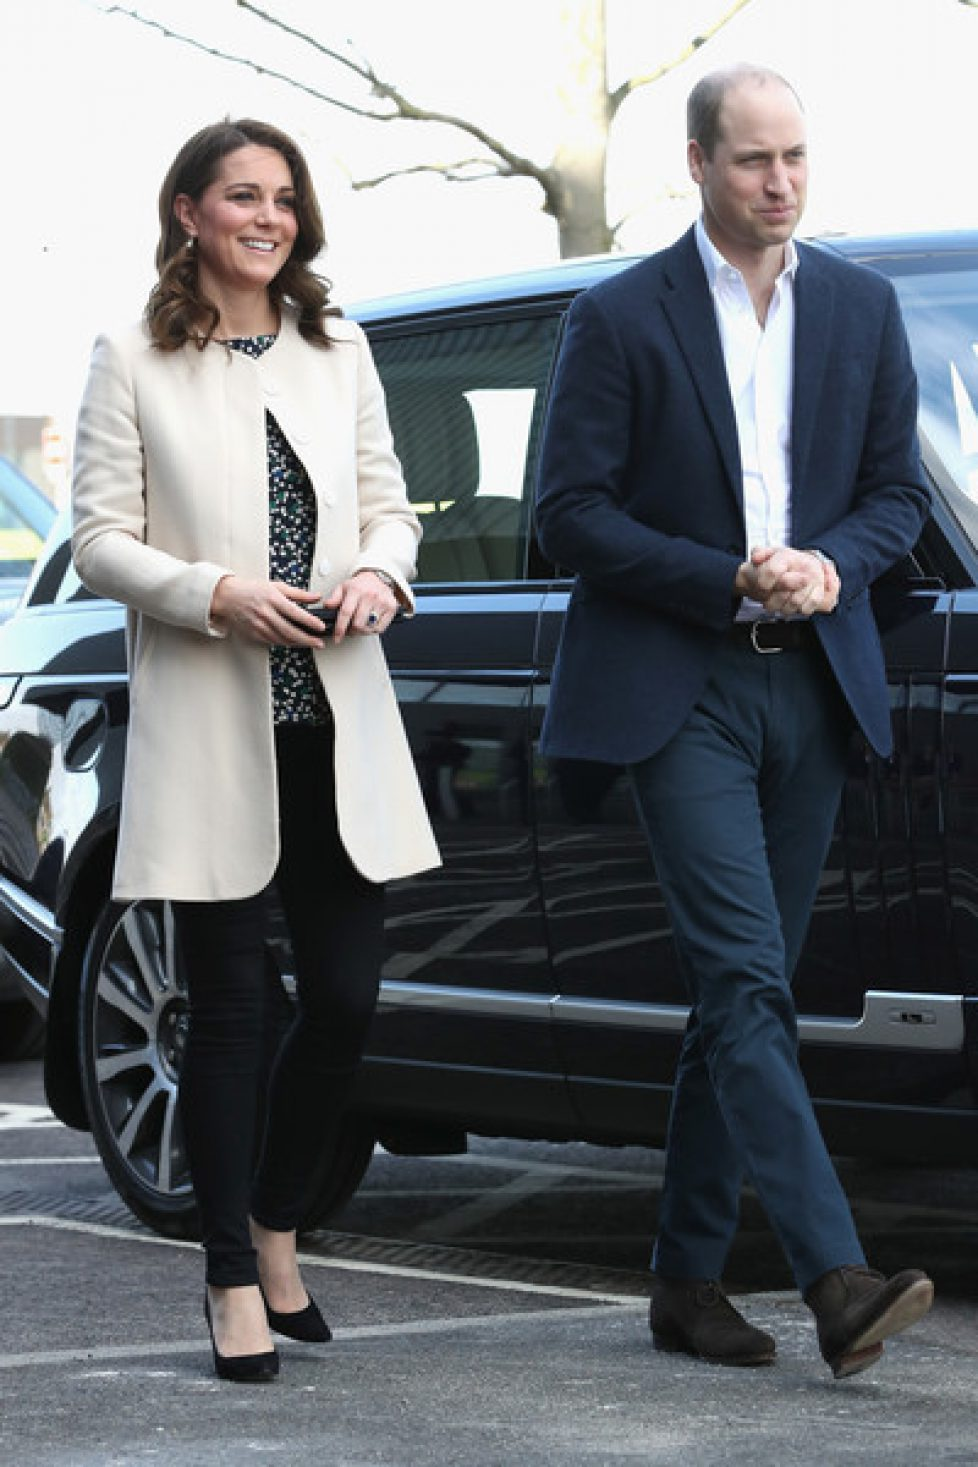 Duke+Duchess+Cambridge+Undertake+Engagements+o0hp0ABYH5Wl